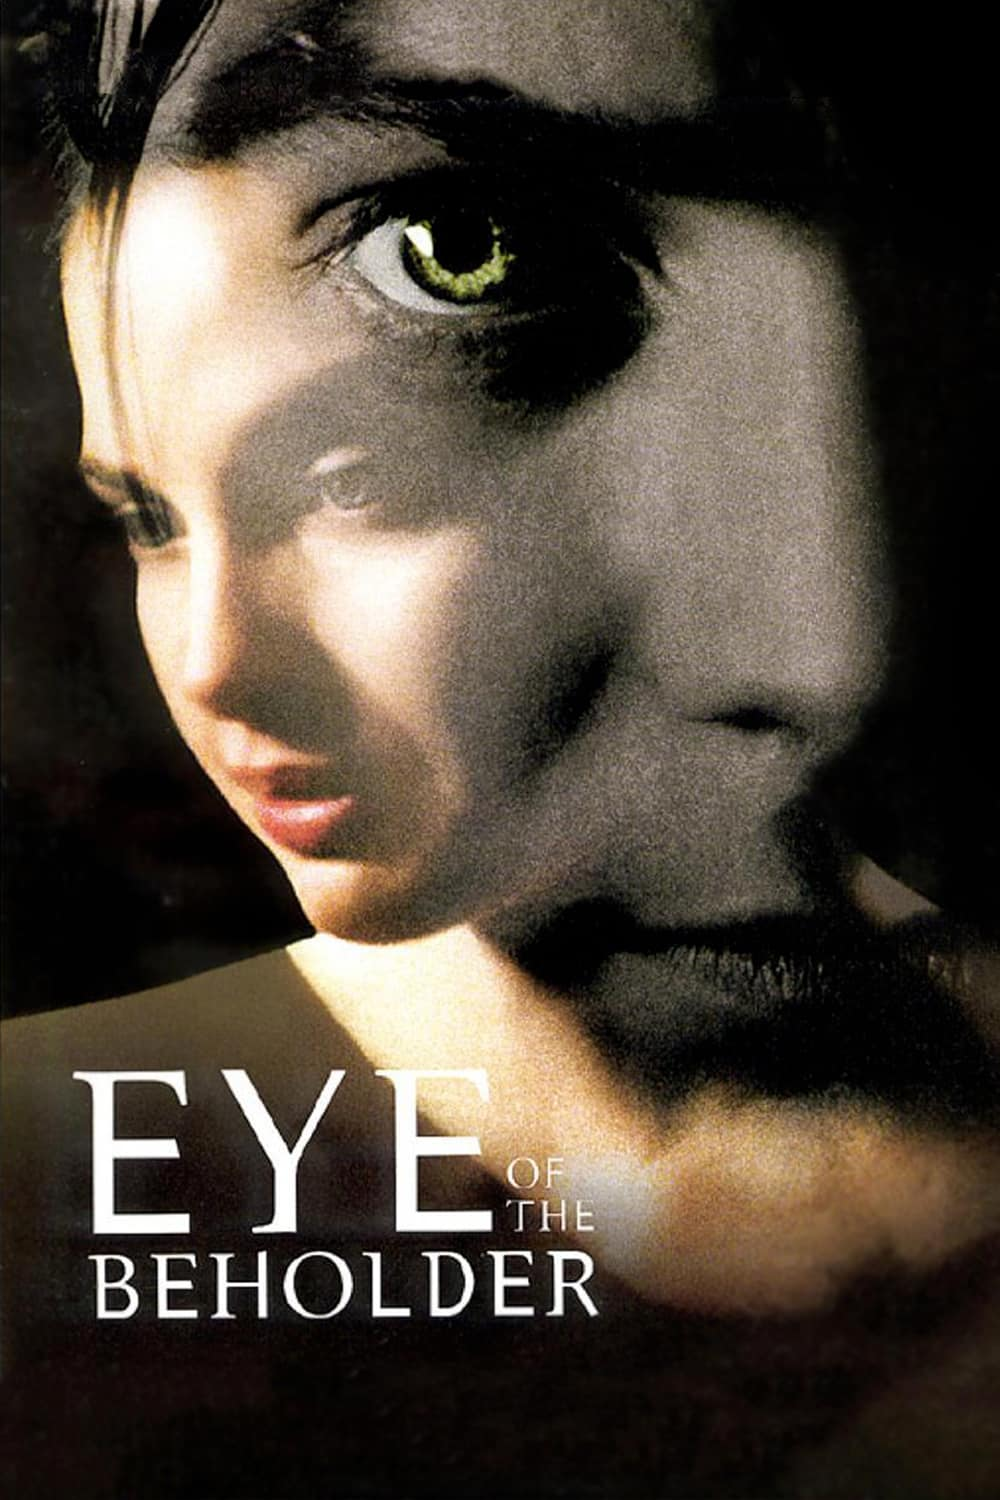 Eye of the Beholder, 1999